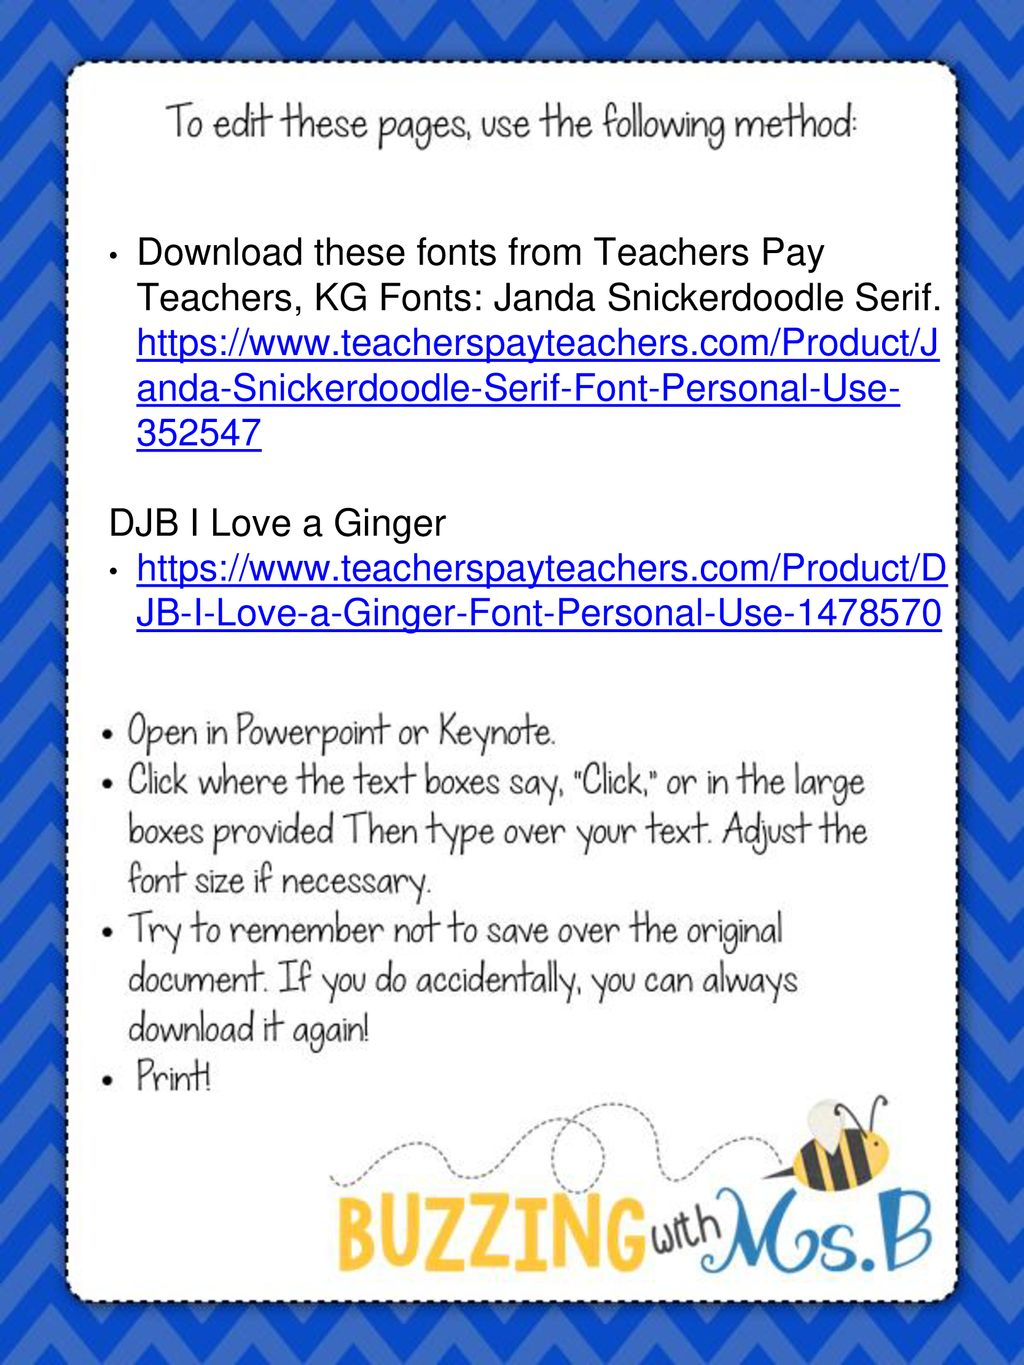 Download these fonts from Teachers Pay Teachers, KG Fonts